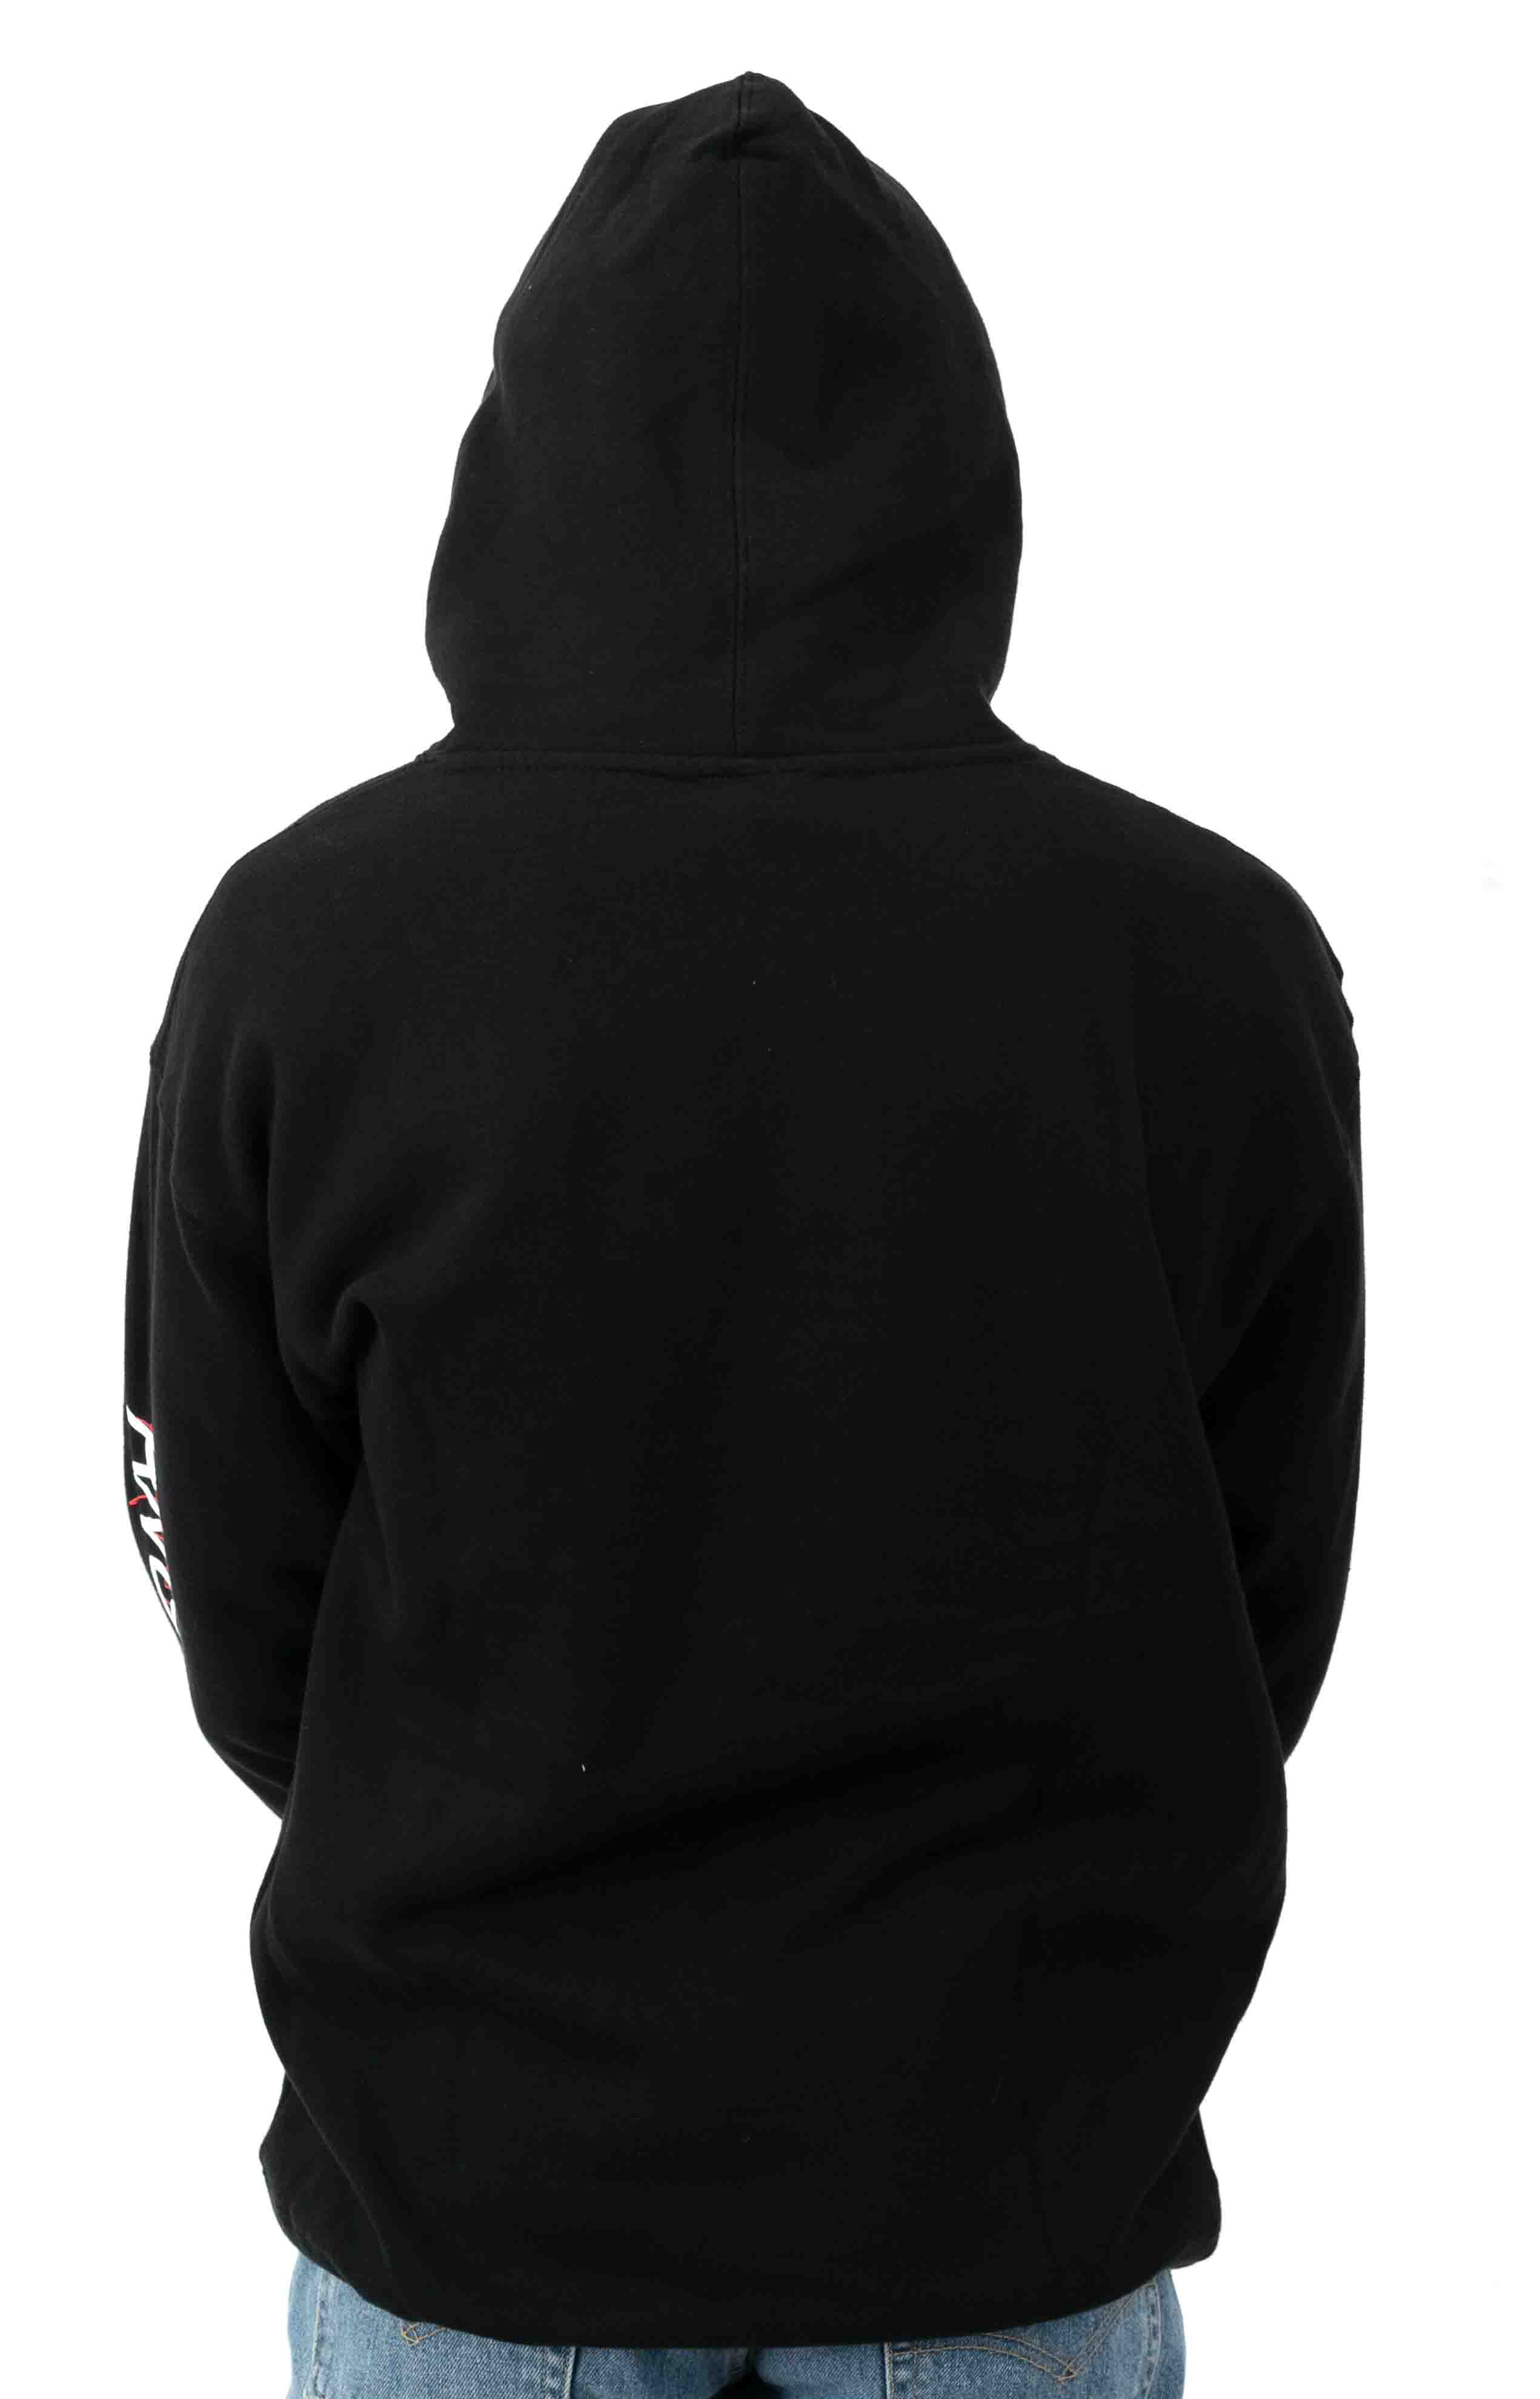 Coco Pullover Hoodie - Black 3